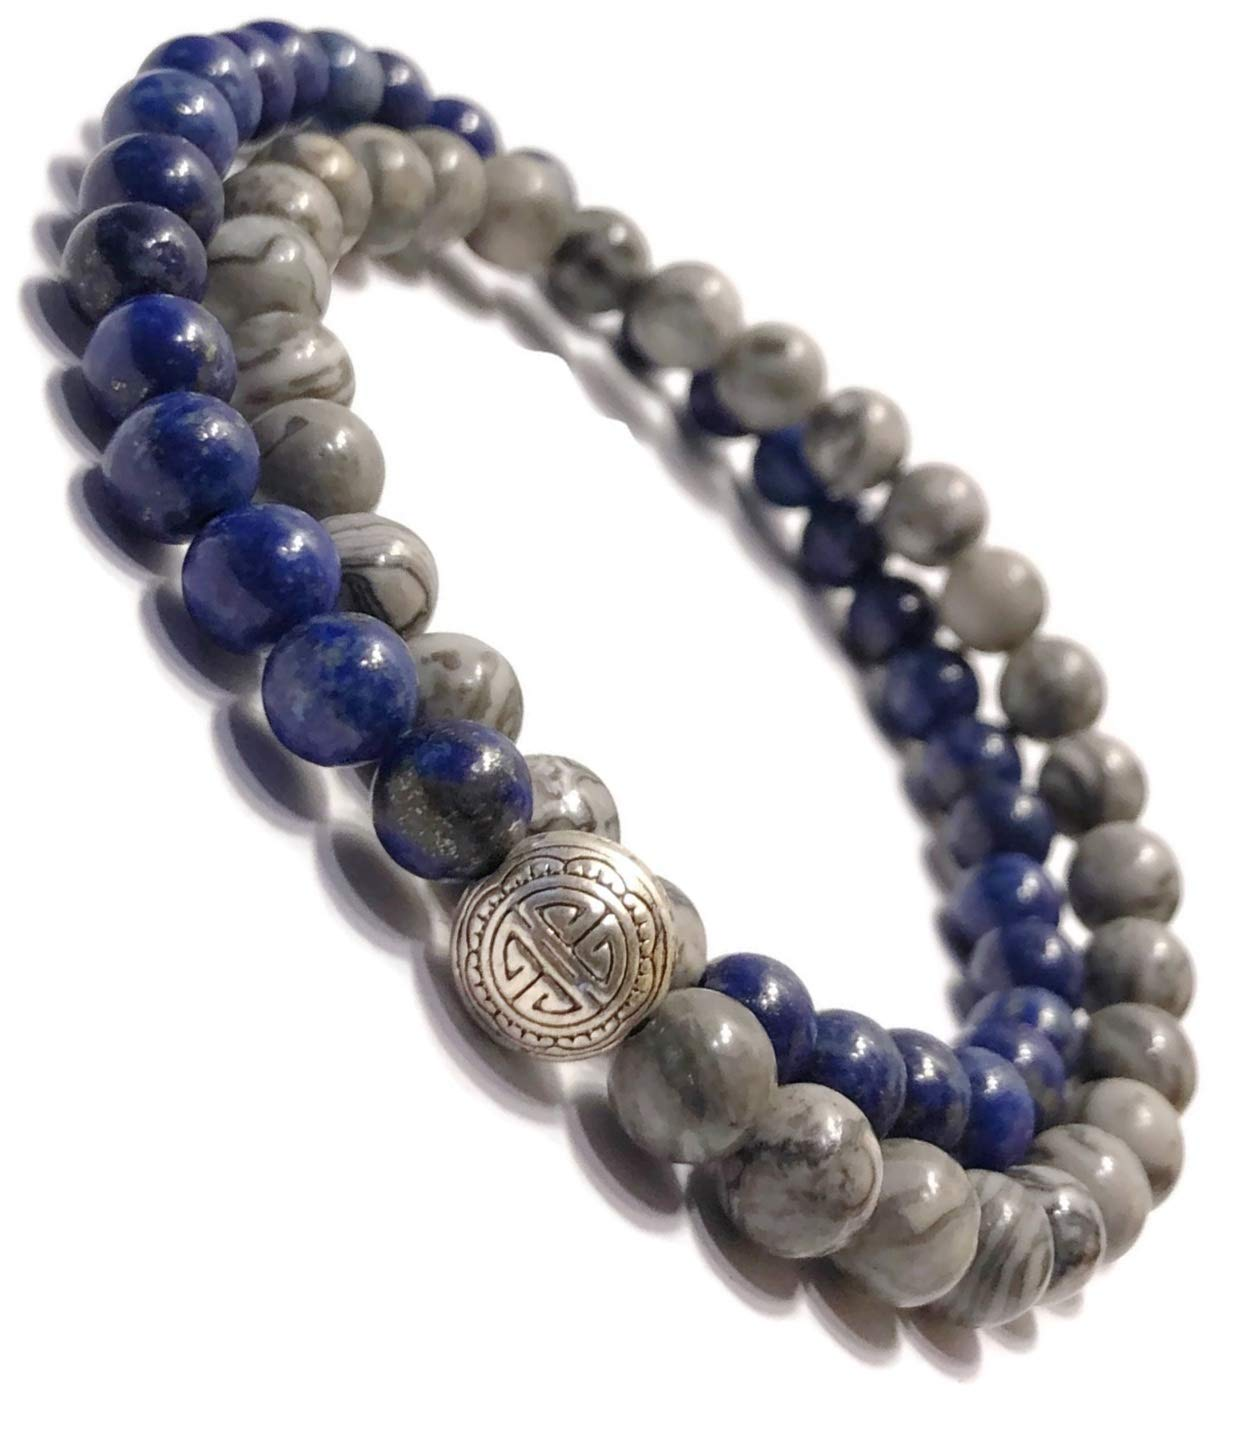 KarmaArm Beaded Bracelets | Good Fortune: Lapis Lazuli | Silver Crazy Lace Agate Good Luck & Prosperity Beaded Reiki Yoga Chakra Bracelet, Meditation Jewelry Boho Stretch Bracelets (7)